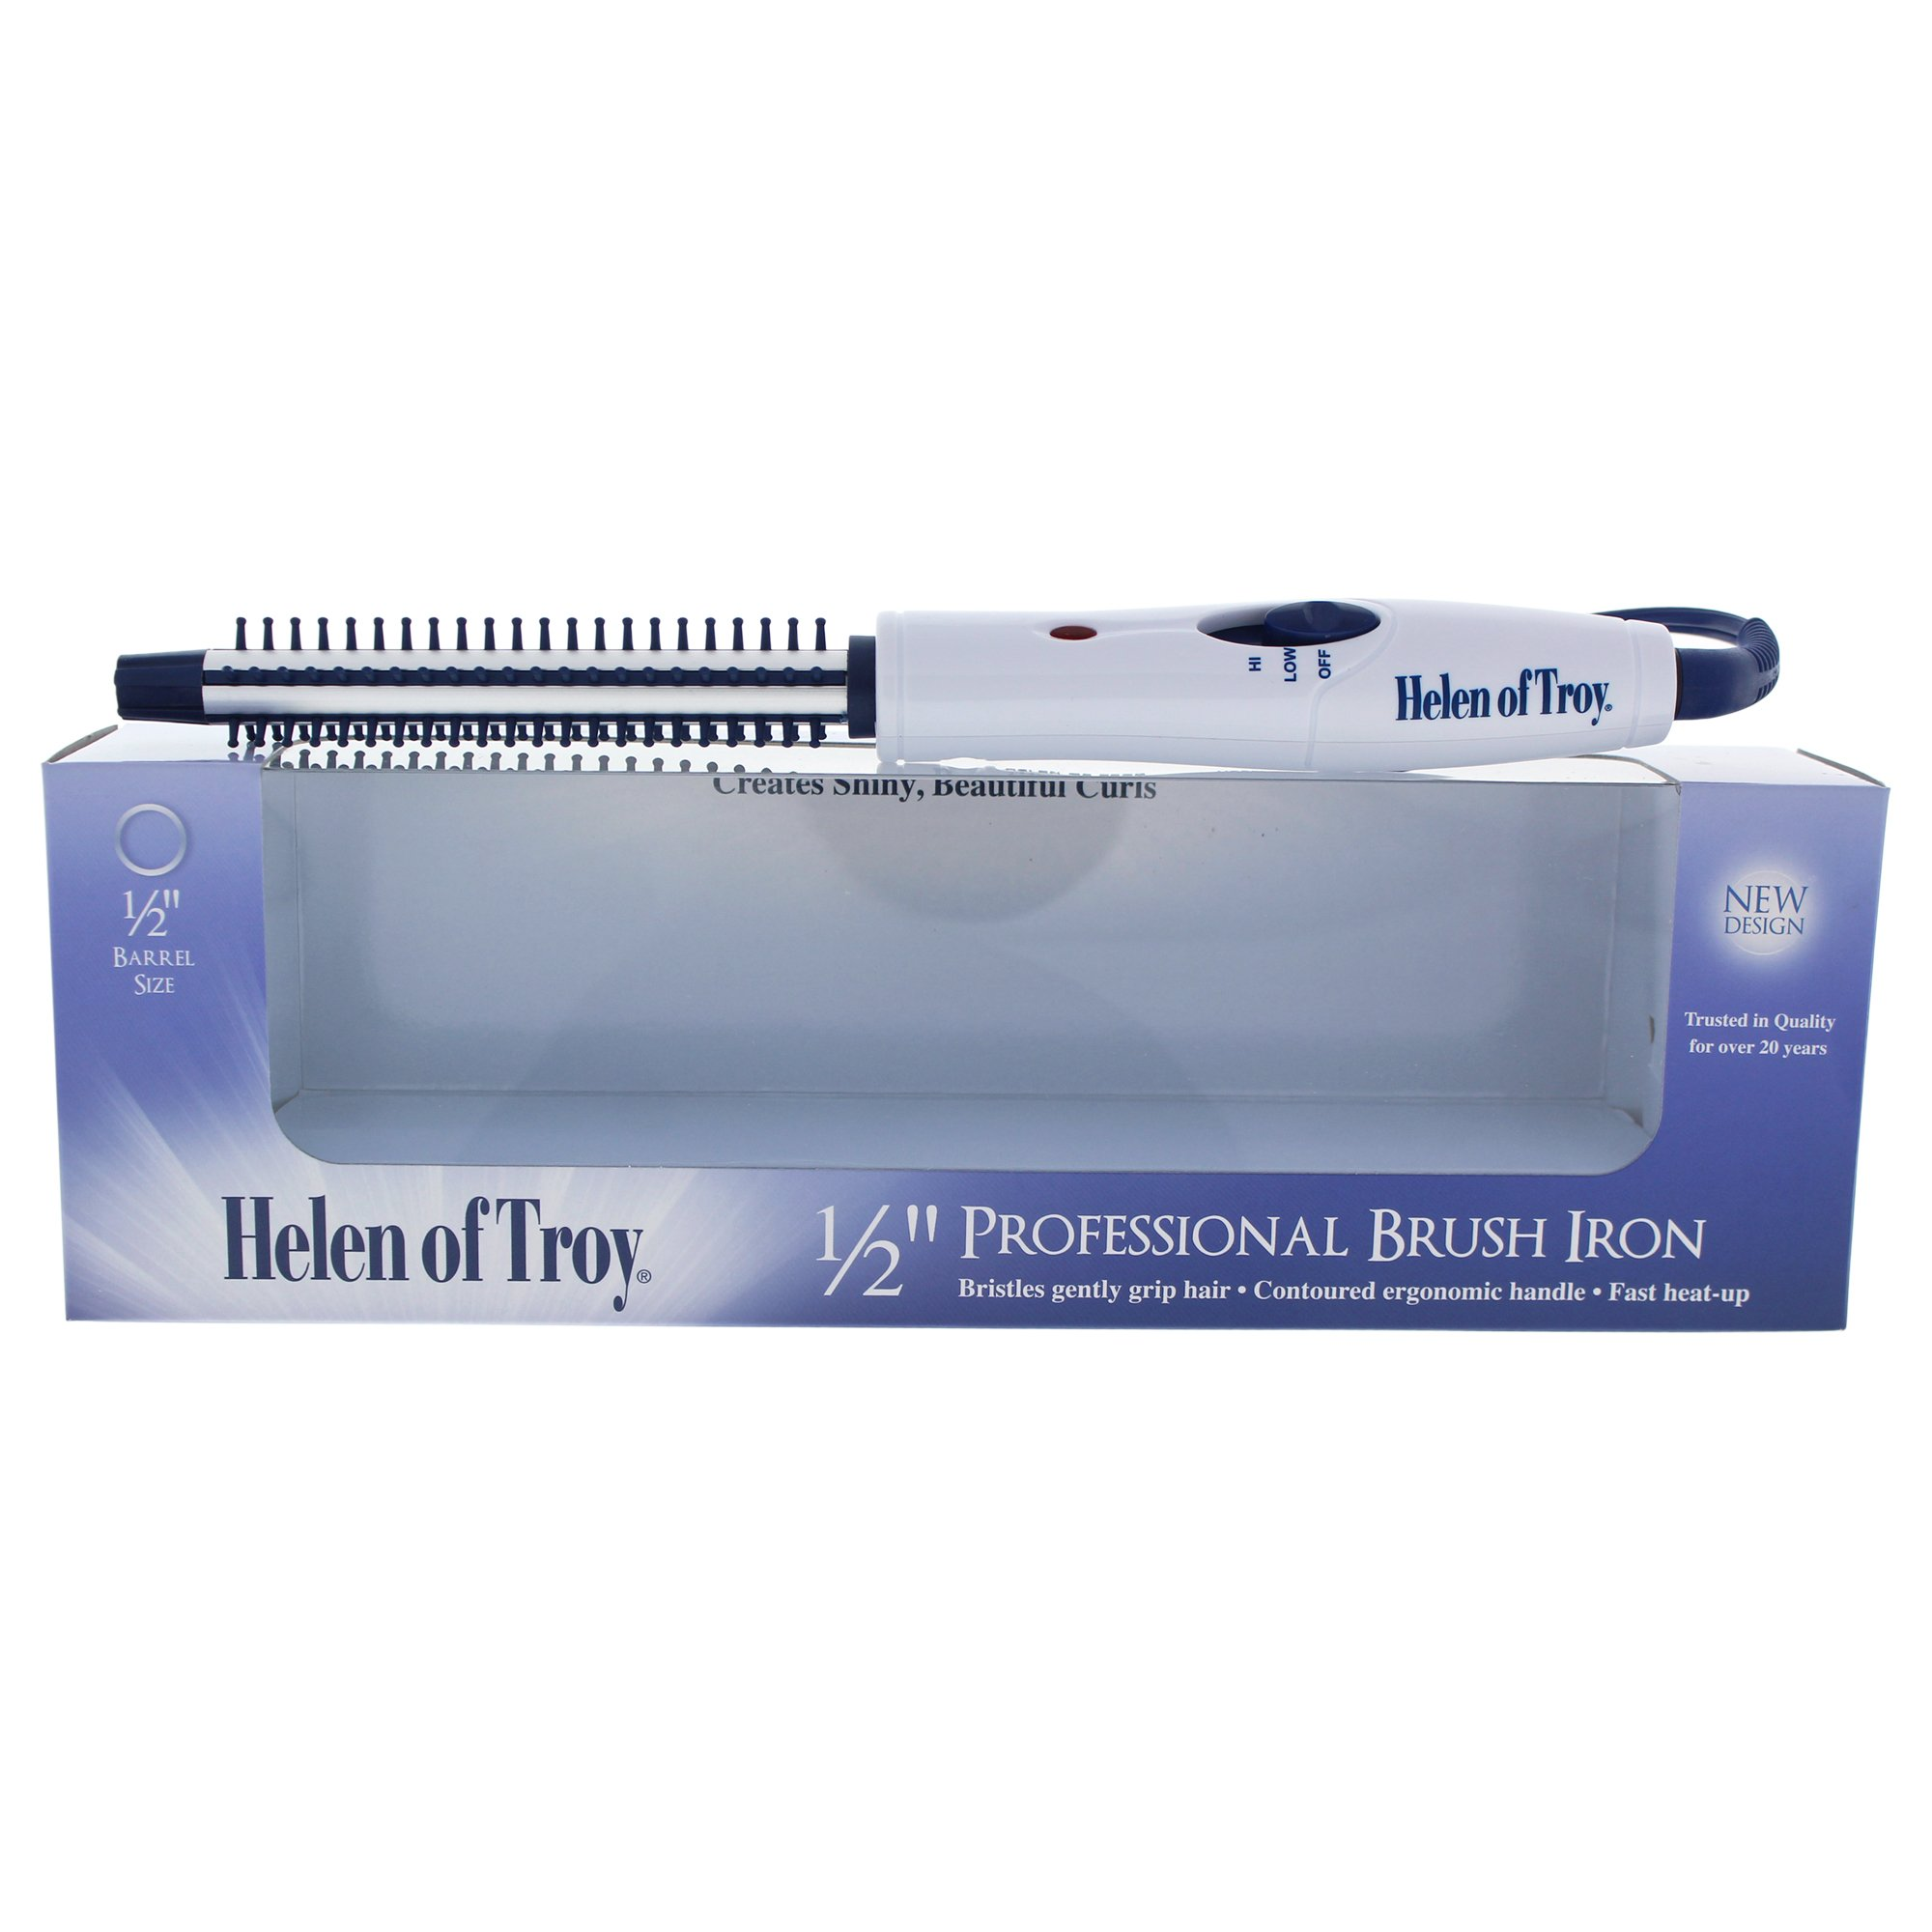 Helen of Troy 1512 Brush Iron, White, 1/2 Inch Barrel